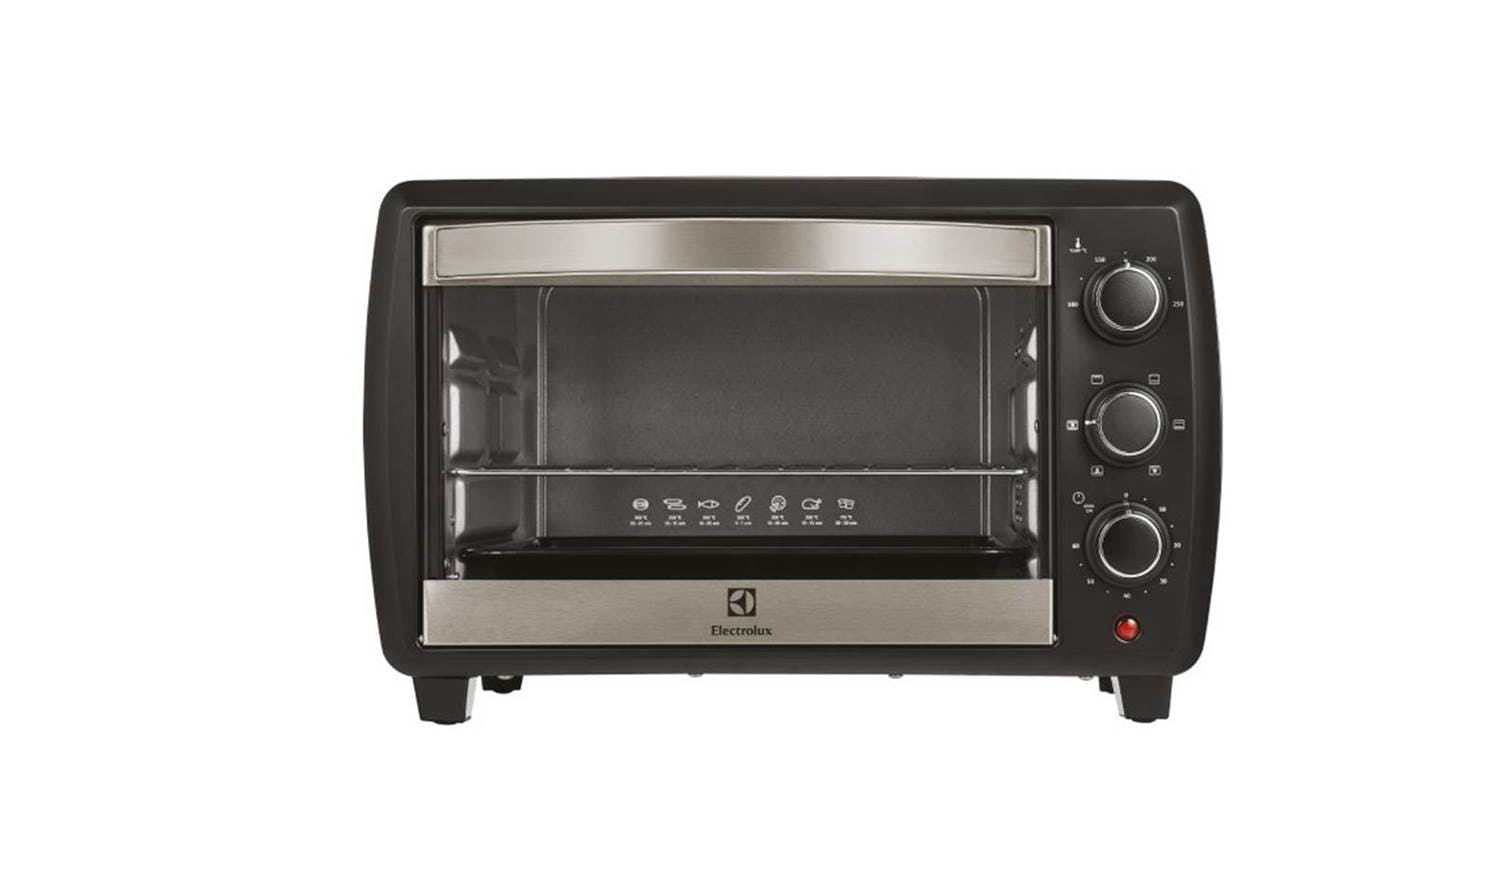 Kitchen Appliances Singapore Electrolux Eot 4805k Oven Toaster Harvey Norman Singapore